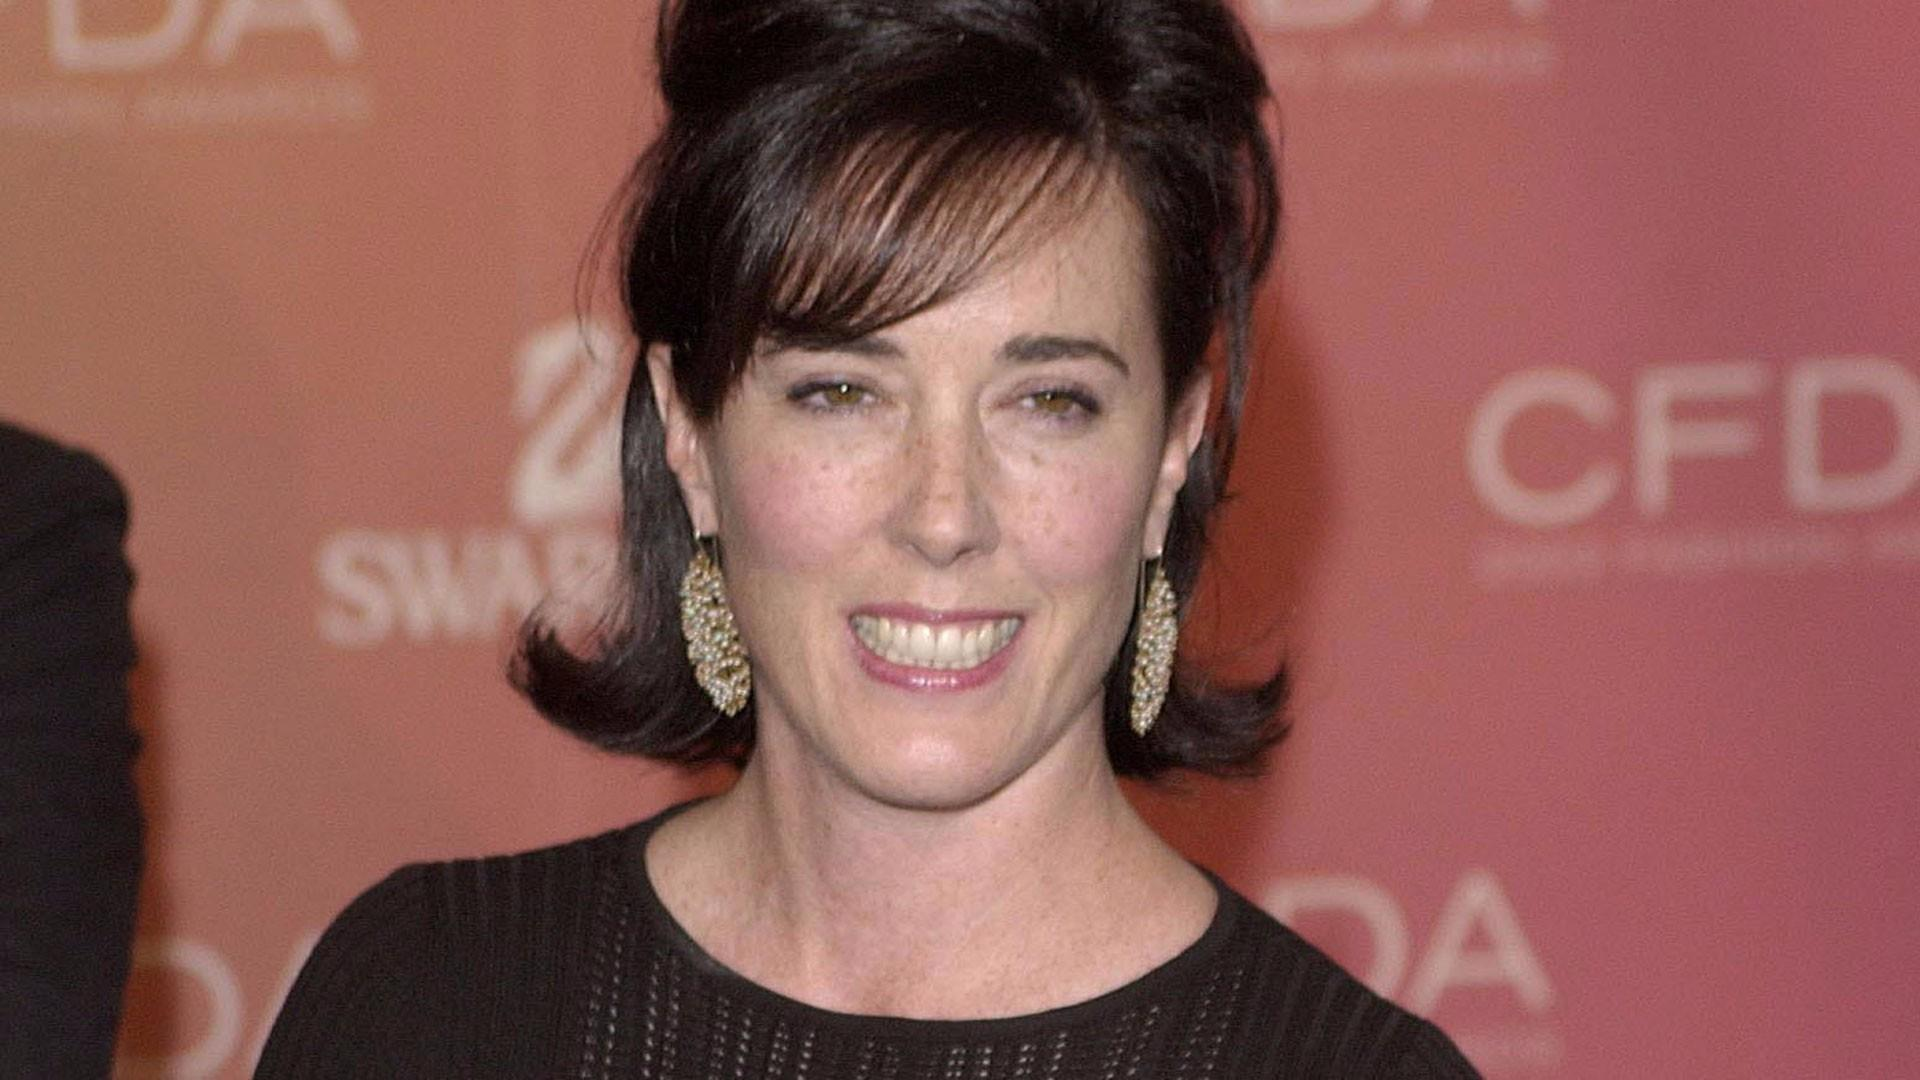 Designer Kate Spade found dead in apparent suicide